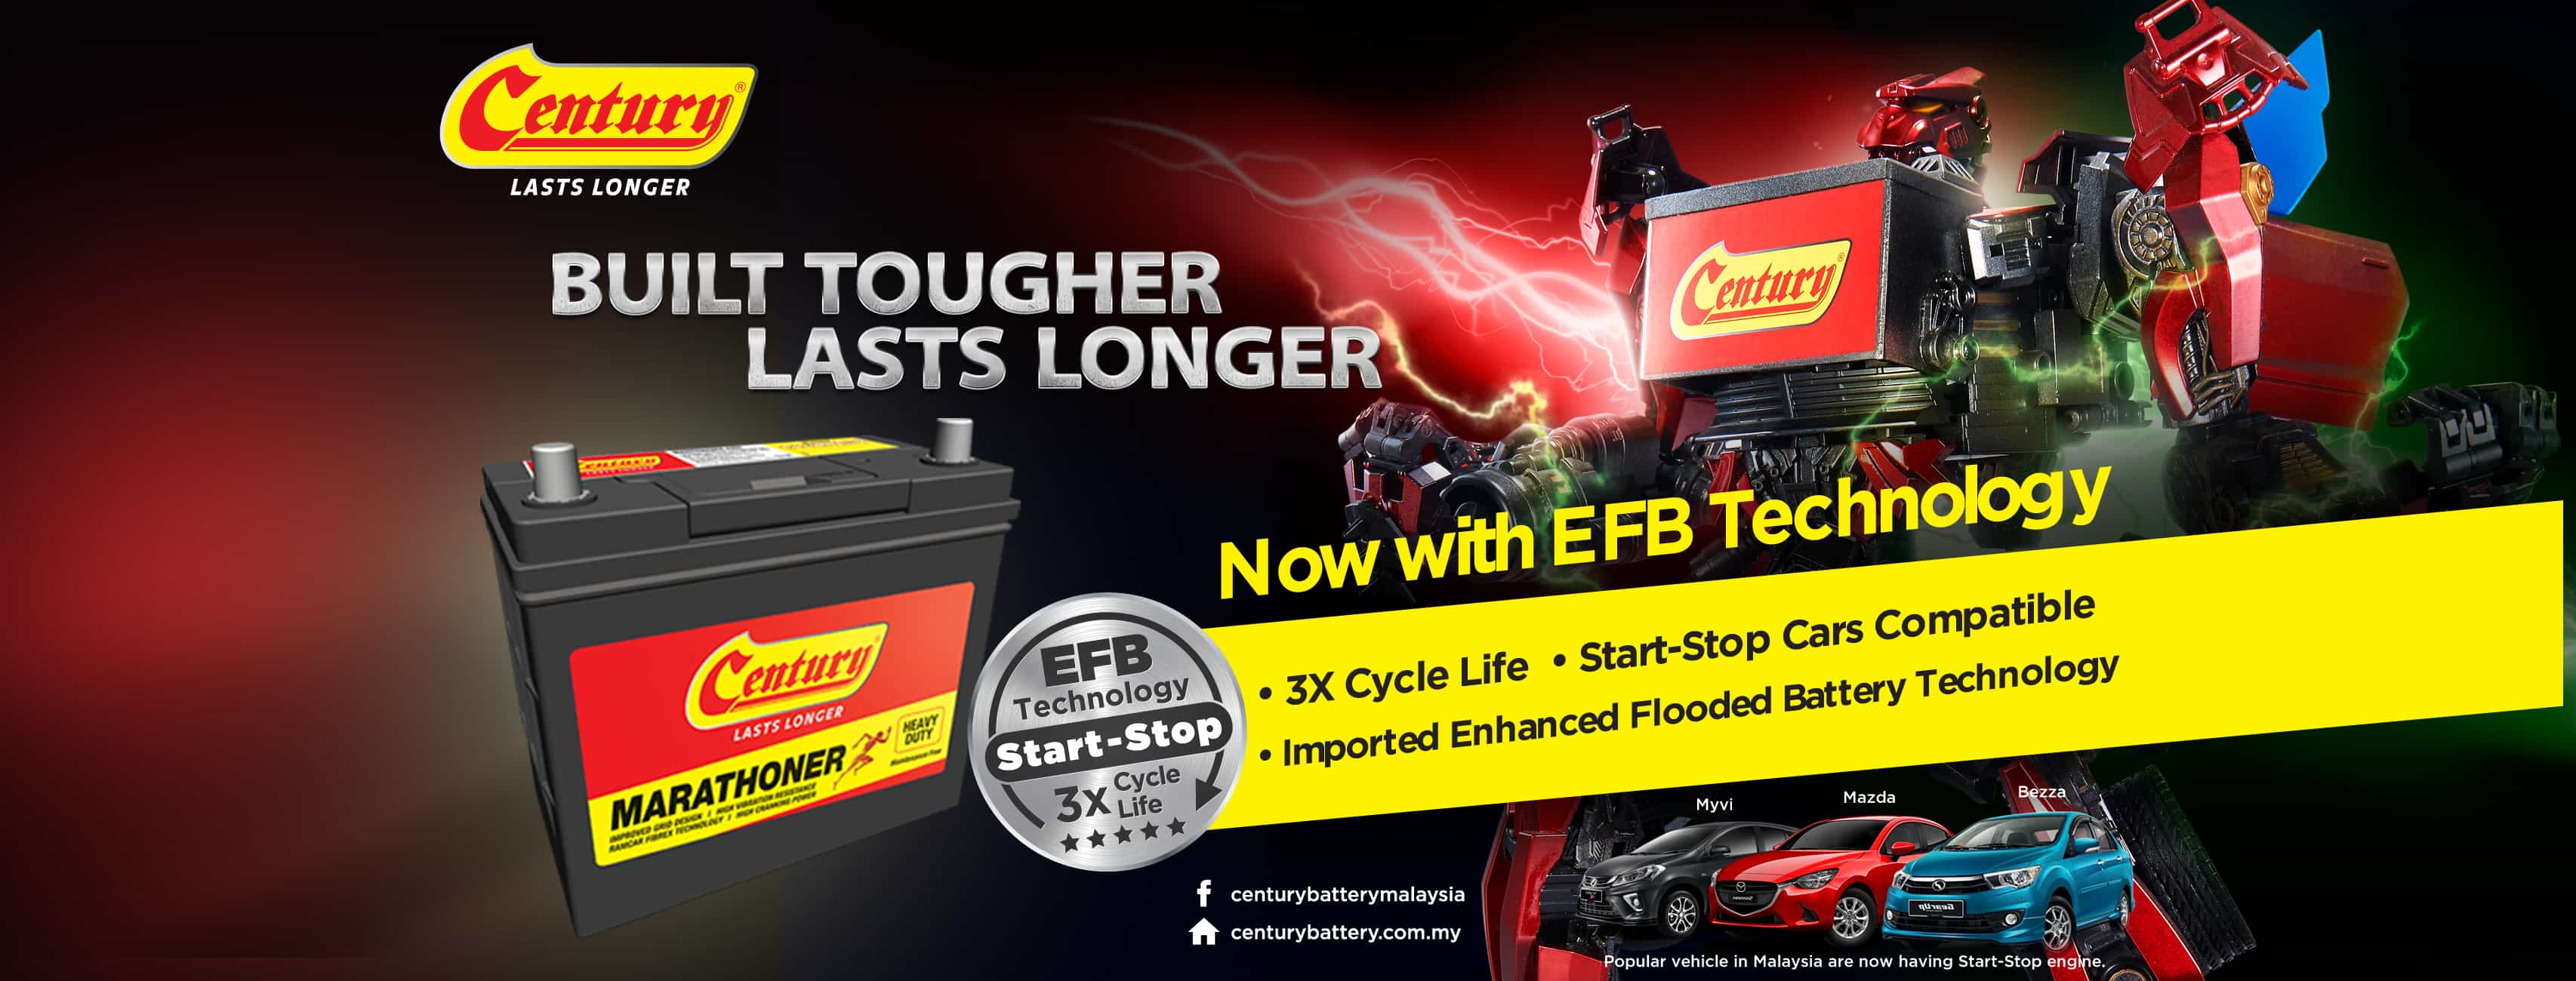 Century Batteries now packed with EFB technology start-stop cars!| Century Battery